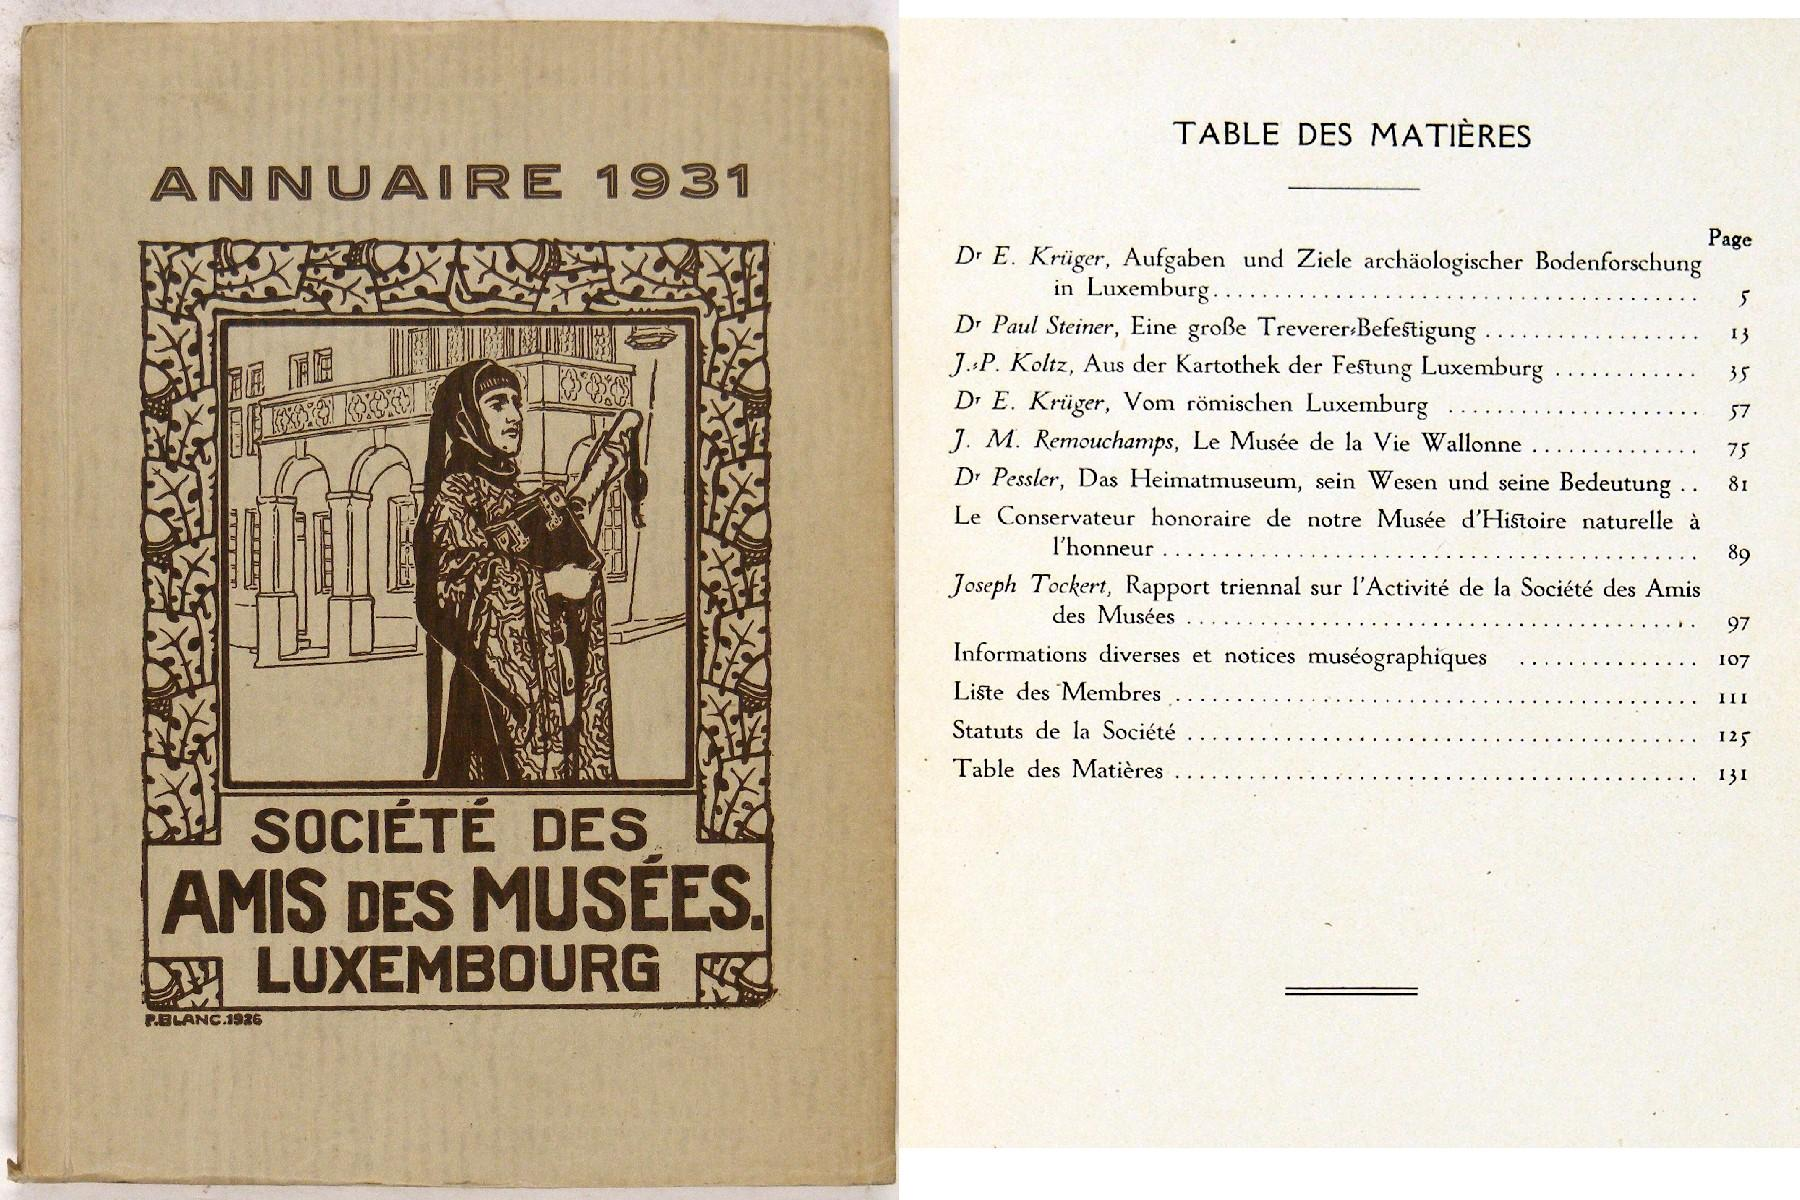 Annuaire 1931 Societe Des Amis Musees Luxemburg Museen